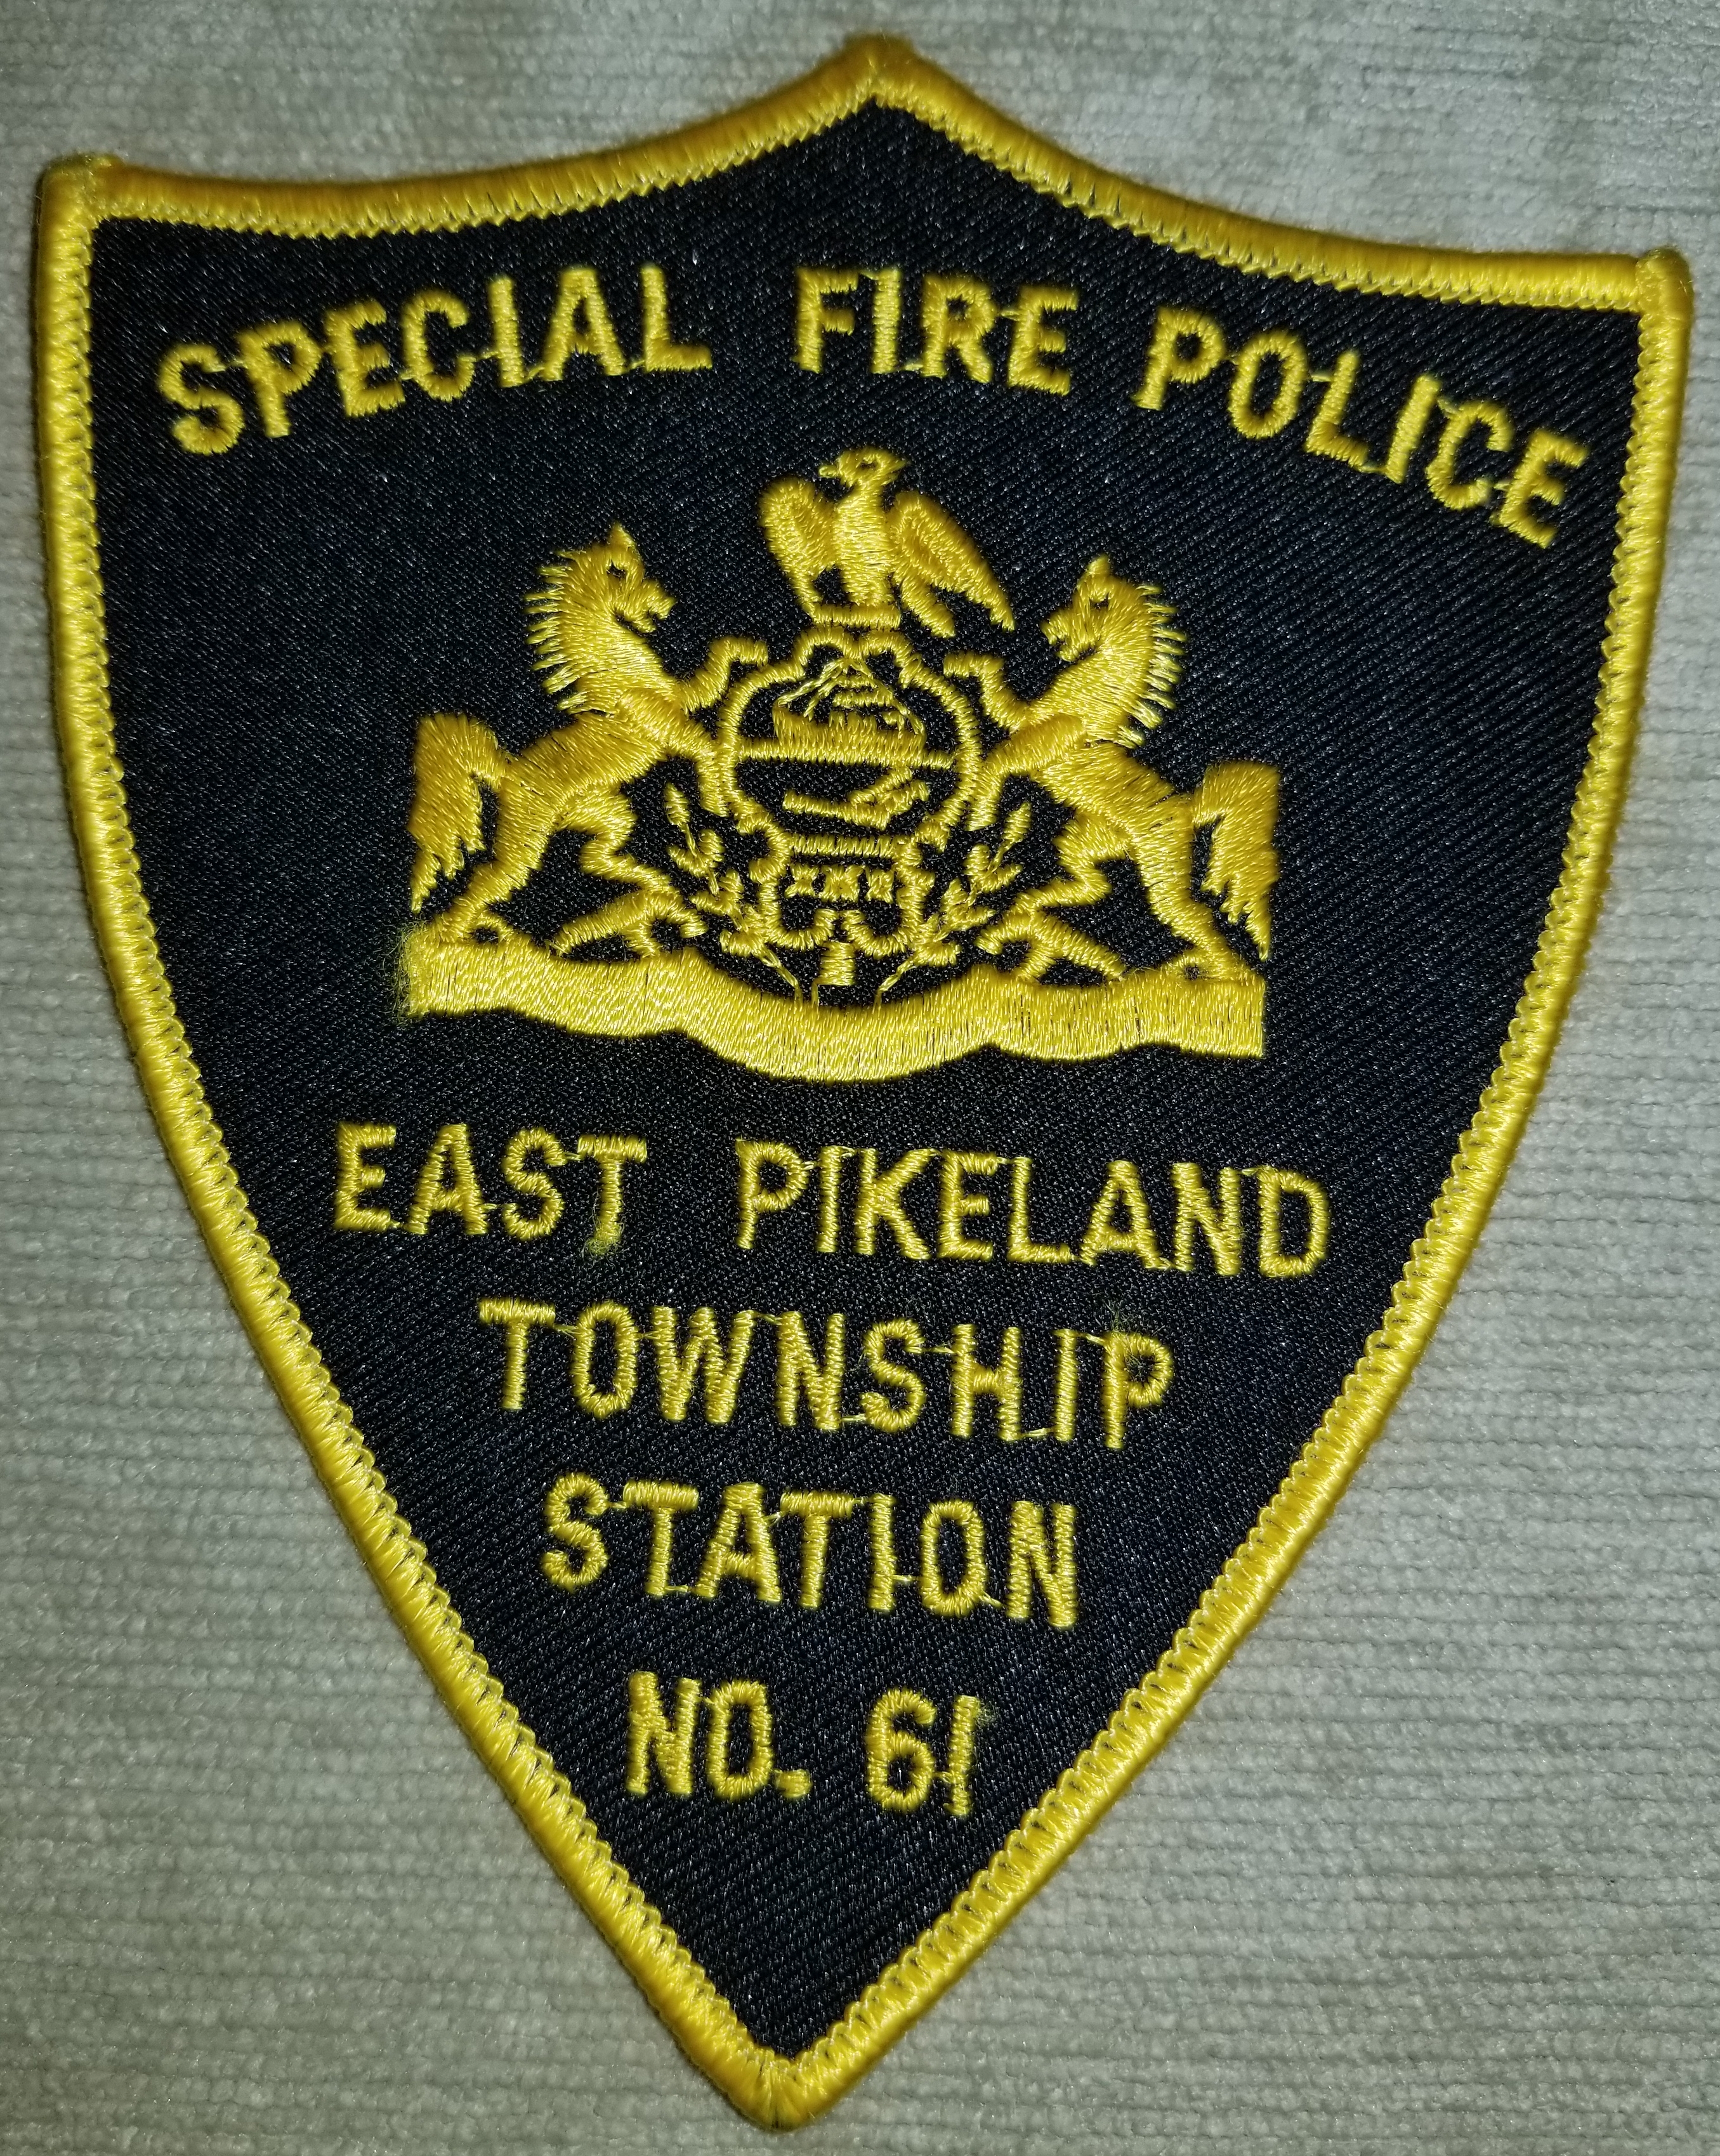 East Pikeland Township Special Fire Poli